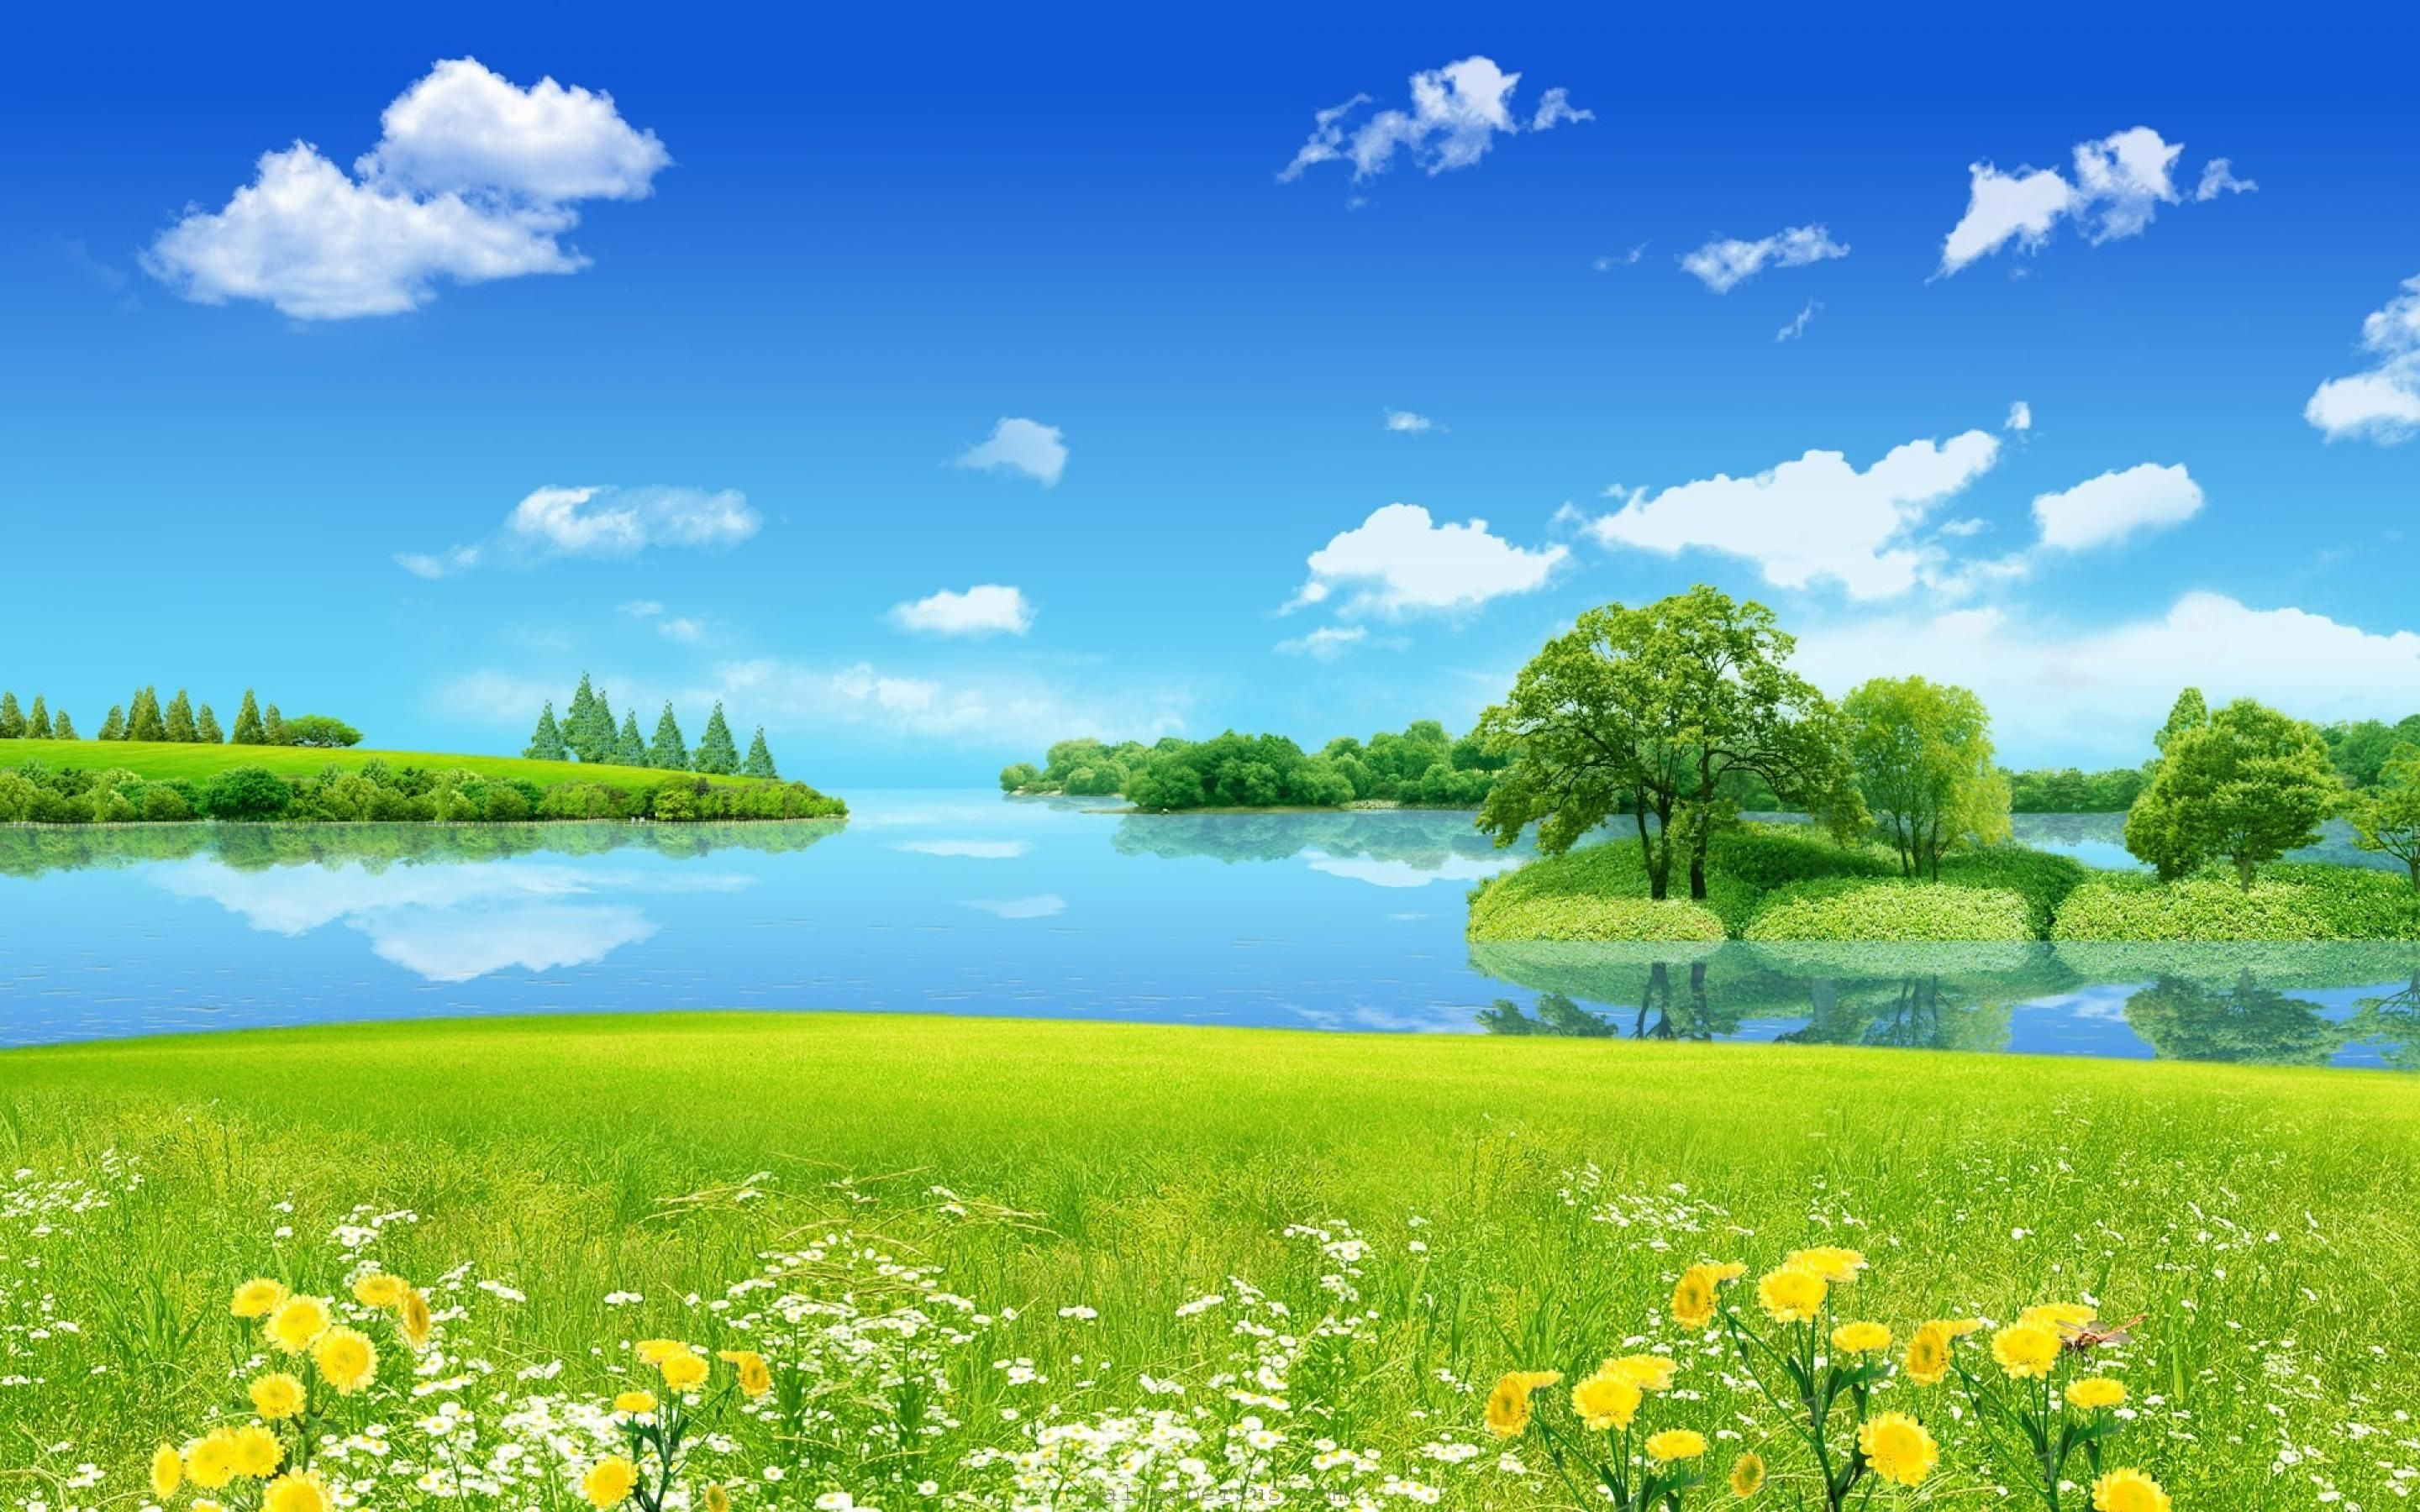 Lovely Nature Wallpaper 4 Jpg 2880 1800 Nature Desktop 3d Nature Wallpaper Nature Desktop Wallpaper